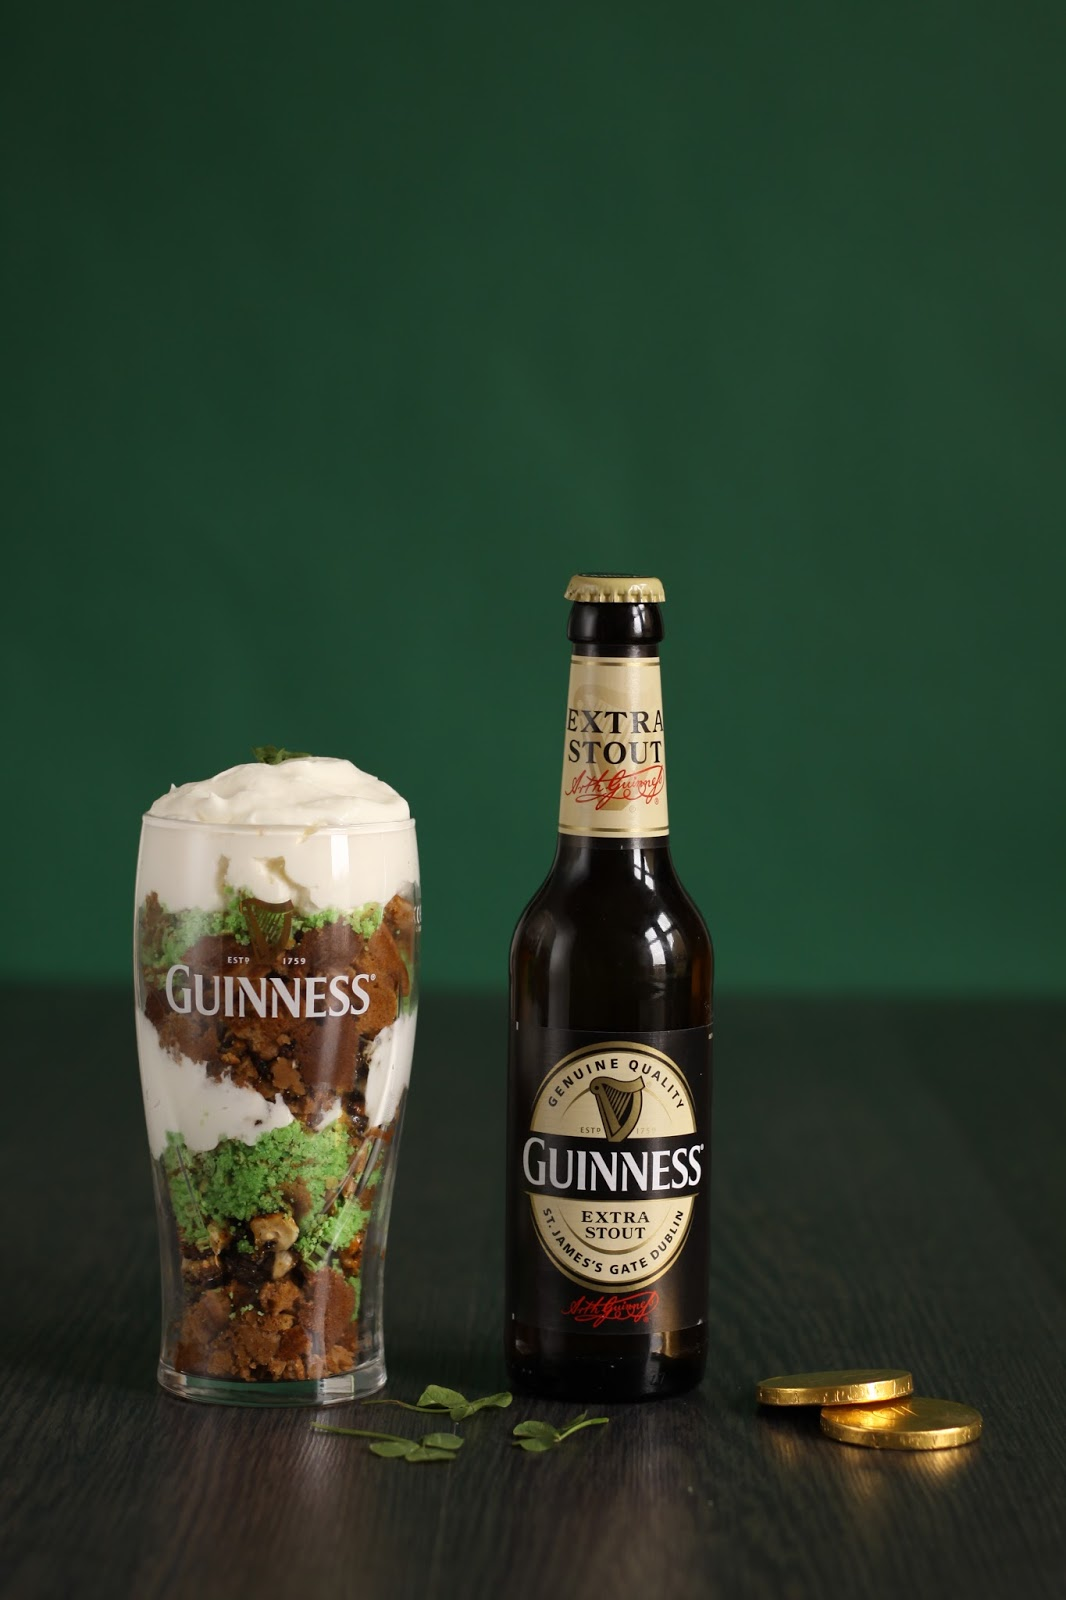 Get ready for the St. Patrick's Day party with these lucky Pancake Pints! Crumbled Beer Pancakes soaked in homemade Guinness maple syrup and mixed with caramelized hazelnuts and Irish whiskey cream. Recipe brought to you by Pancake Stories.